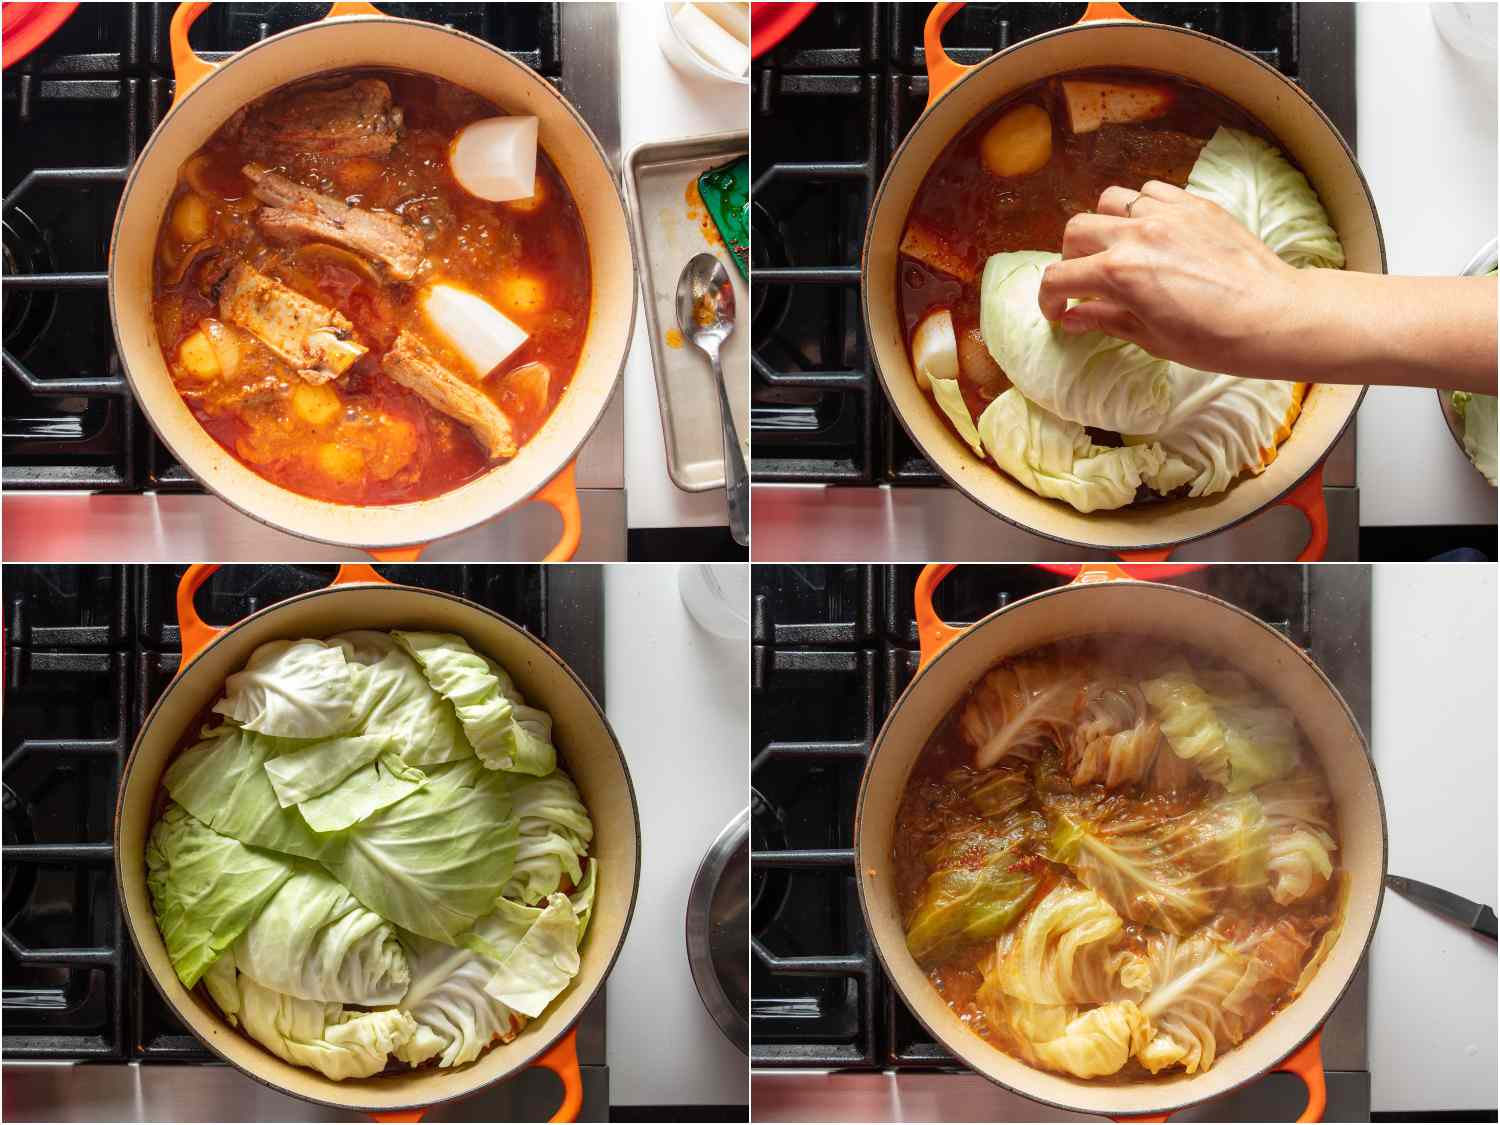 Adding green cabbage leaves to form a lid and simmering with stew